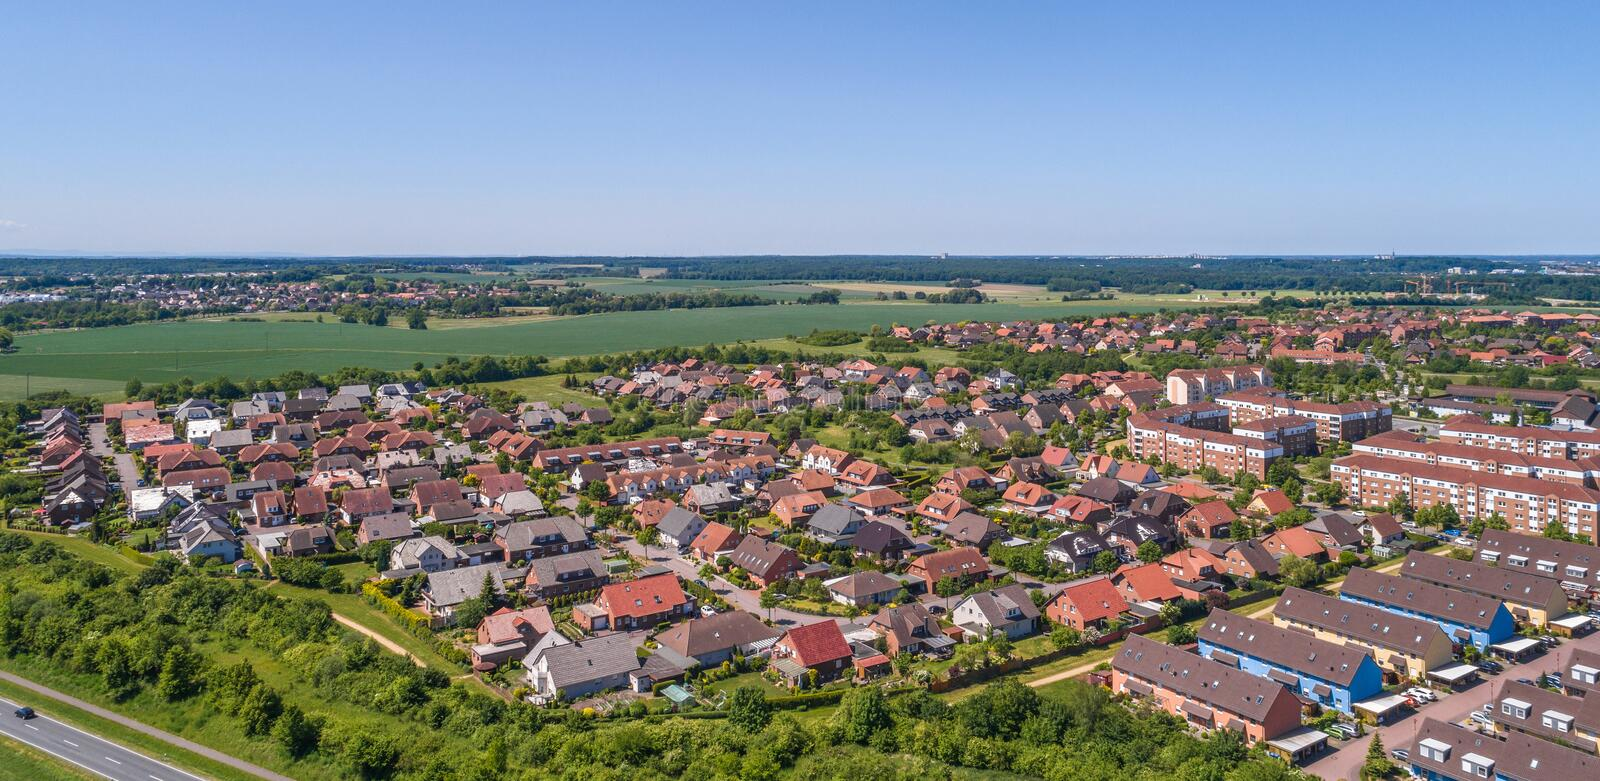 Aerial view of a suburb on the outskirts of Wolfsburg in Germany, with terraced houses, semi-detached houses and detached houses. Made with drone stock image